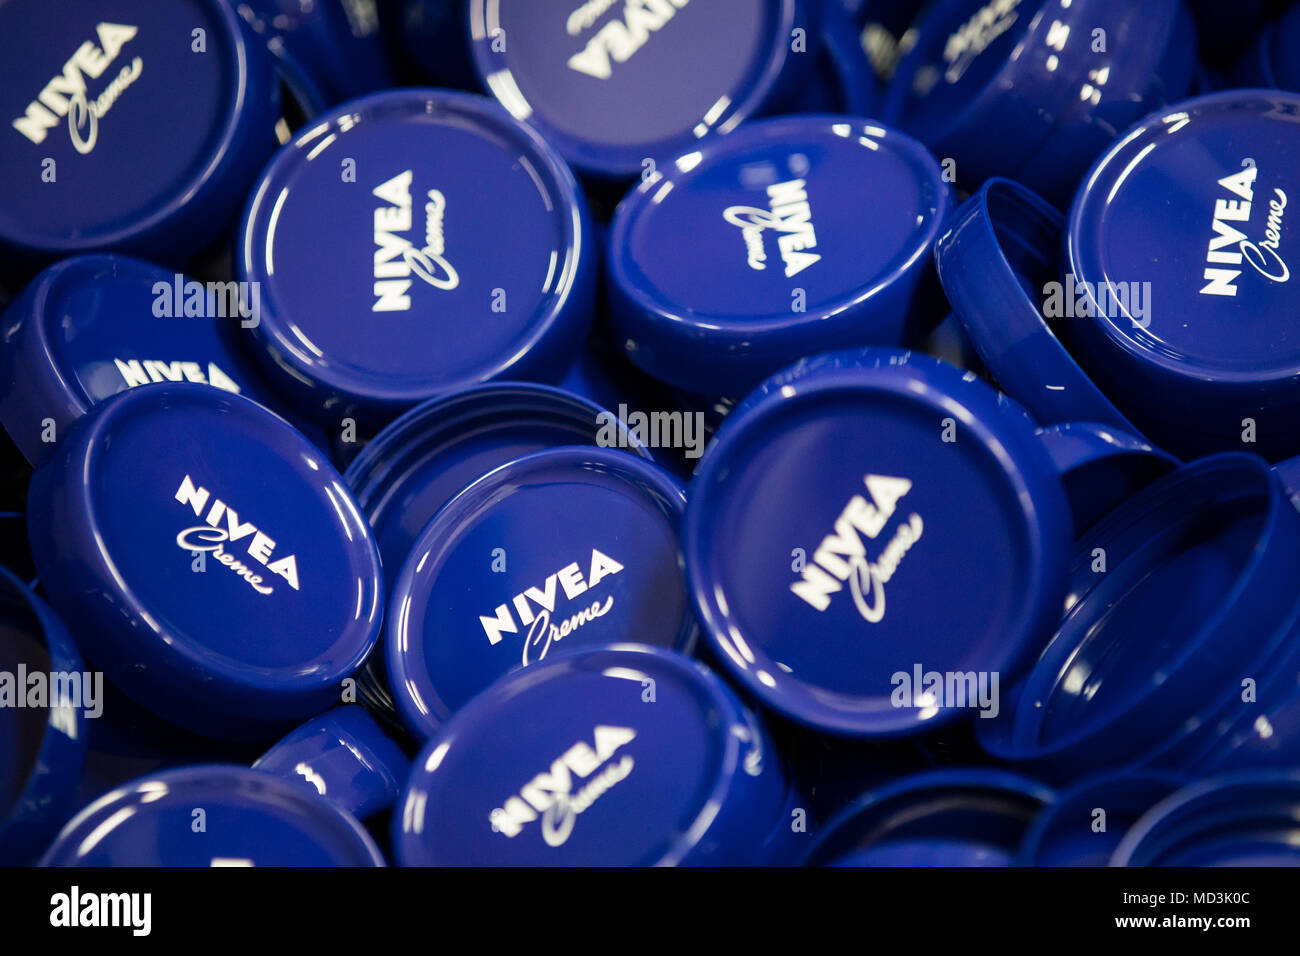 18 April 2018, Germany, Hamburg: Plastic lids for Nivea-Creme in a storage container at the production plant of the German personal-care company Beiersdorf. Photo: Christian Charisius/dpa - Stock Image